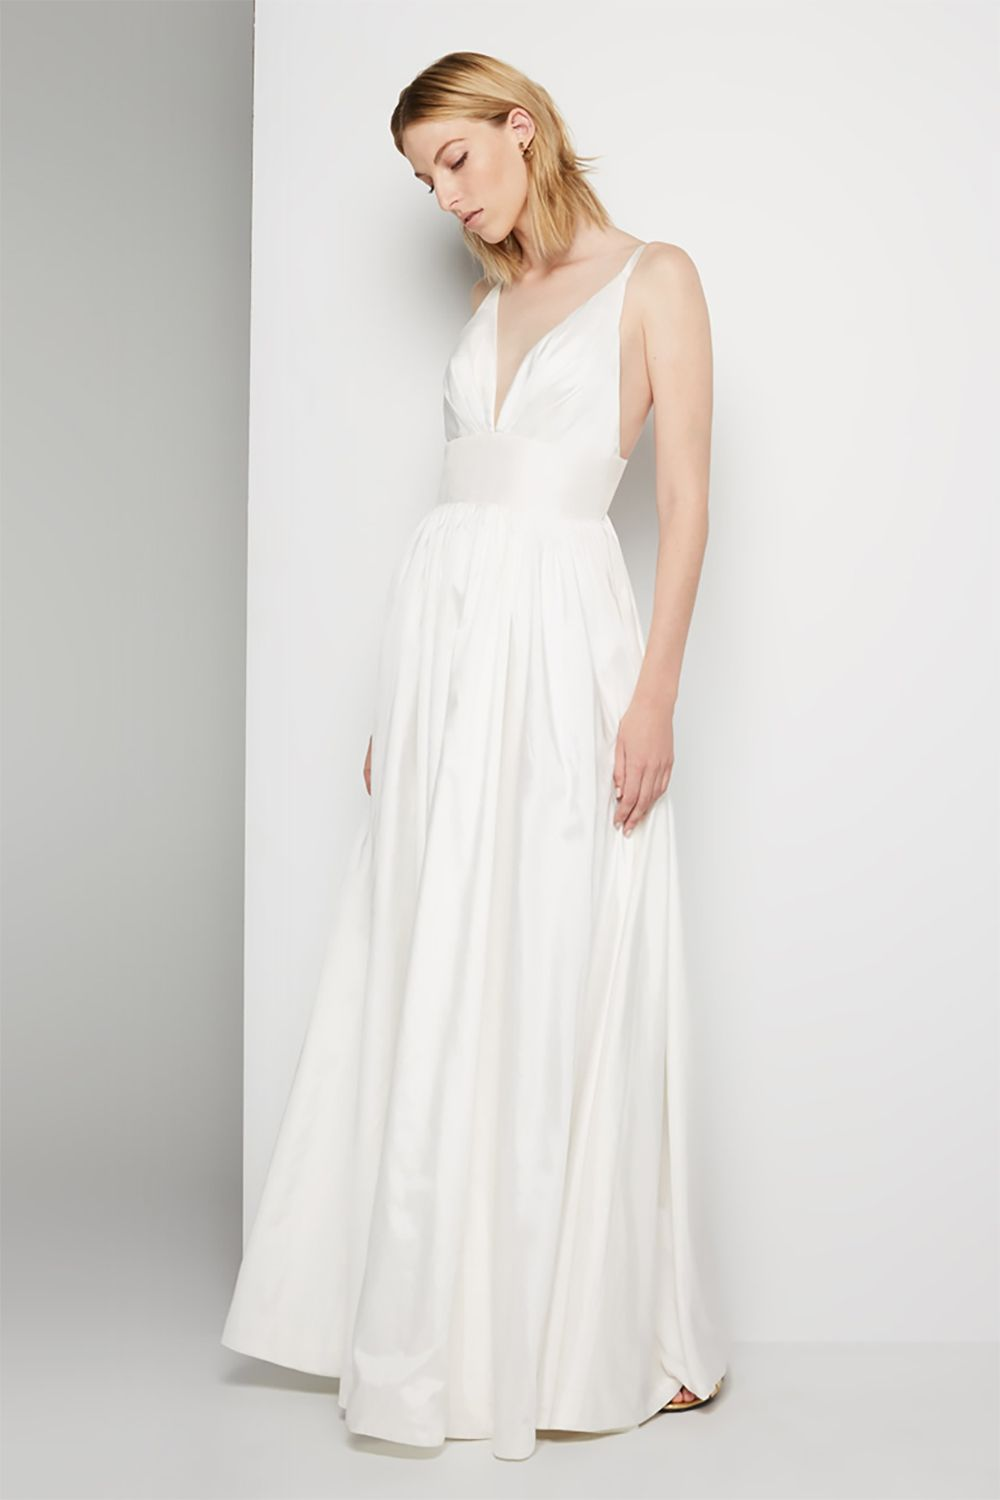 """<p>You might've looked into the online retailer because they let you pick out colors and customize necklines and skirts. They do that for their newly launched wedding category too, which includes this ultra-flattering spaghetti-strap number.</p><p>$239, <a href=""""https://www.fameandpartners.com/dresses/dress-astrid-814?color=white"""" target=""""_blank"""" data-tracking-id=""""recirc-text-link"""">fameandpartners.com</a>.</p>"""